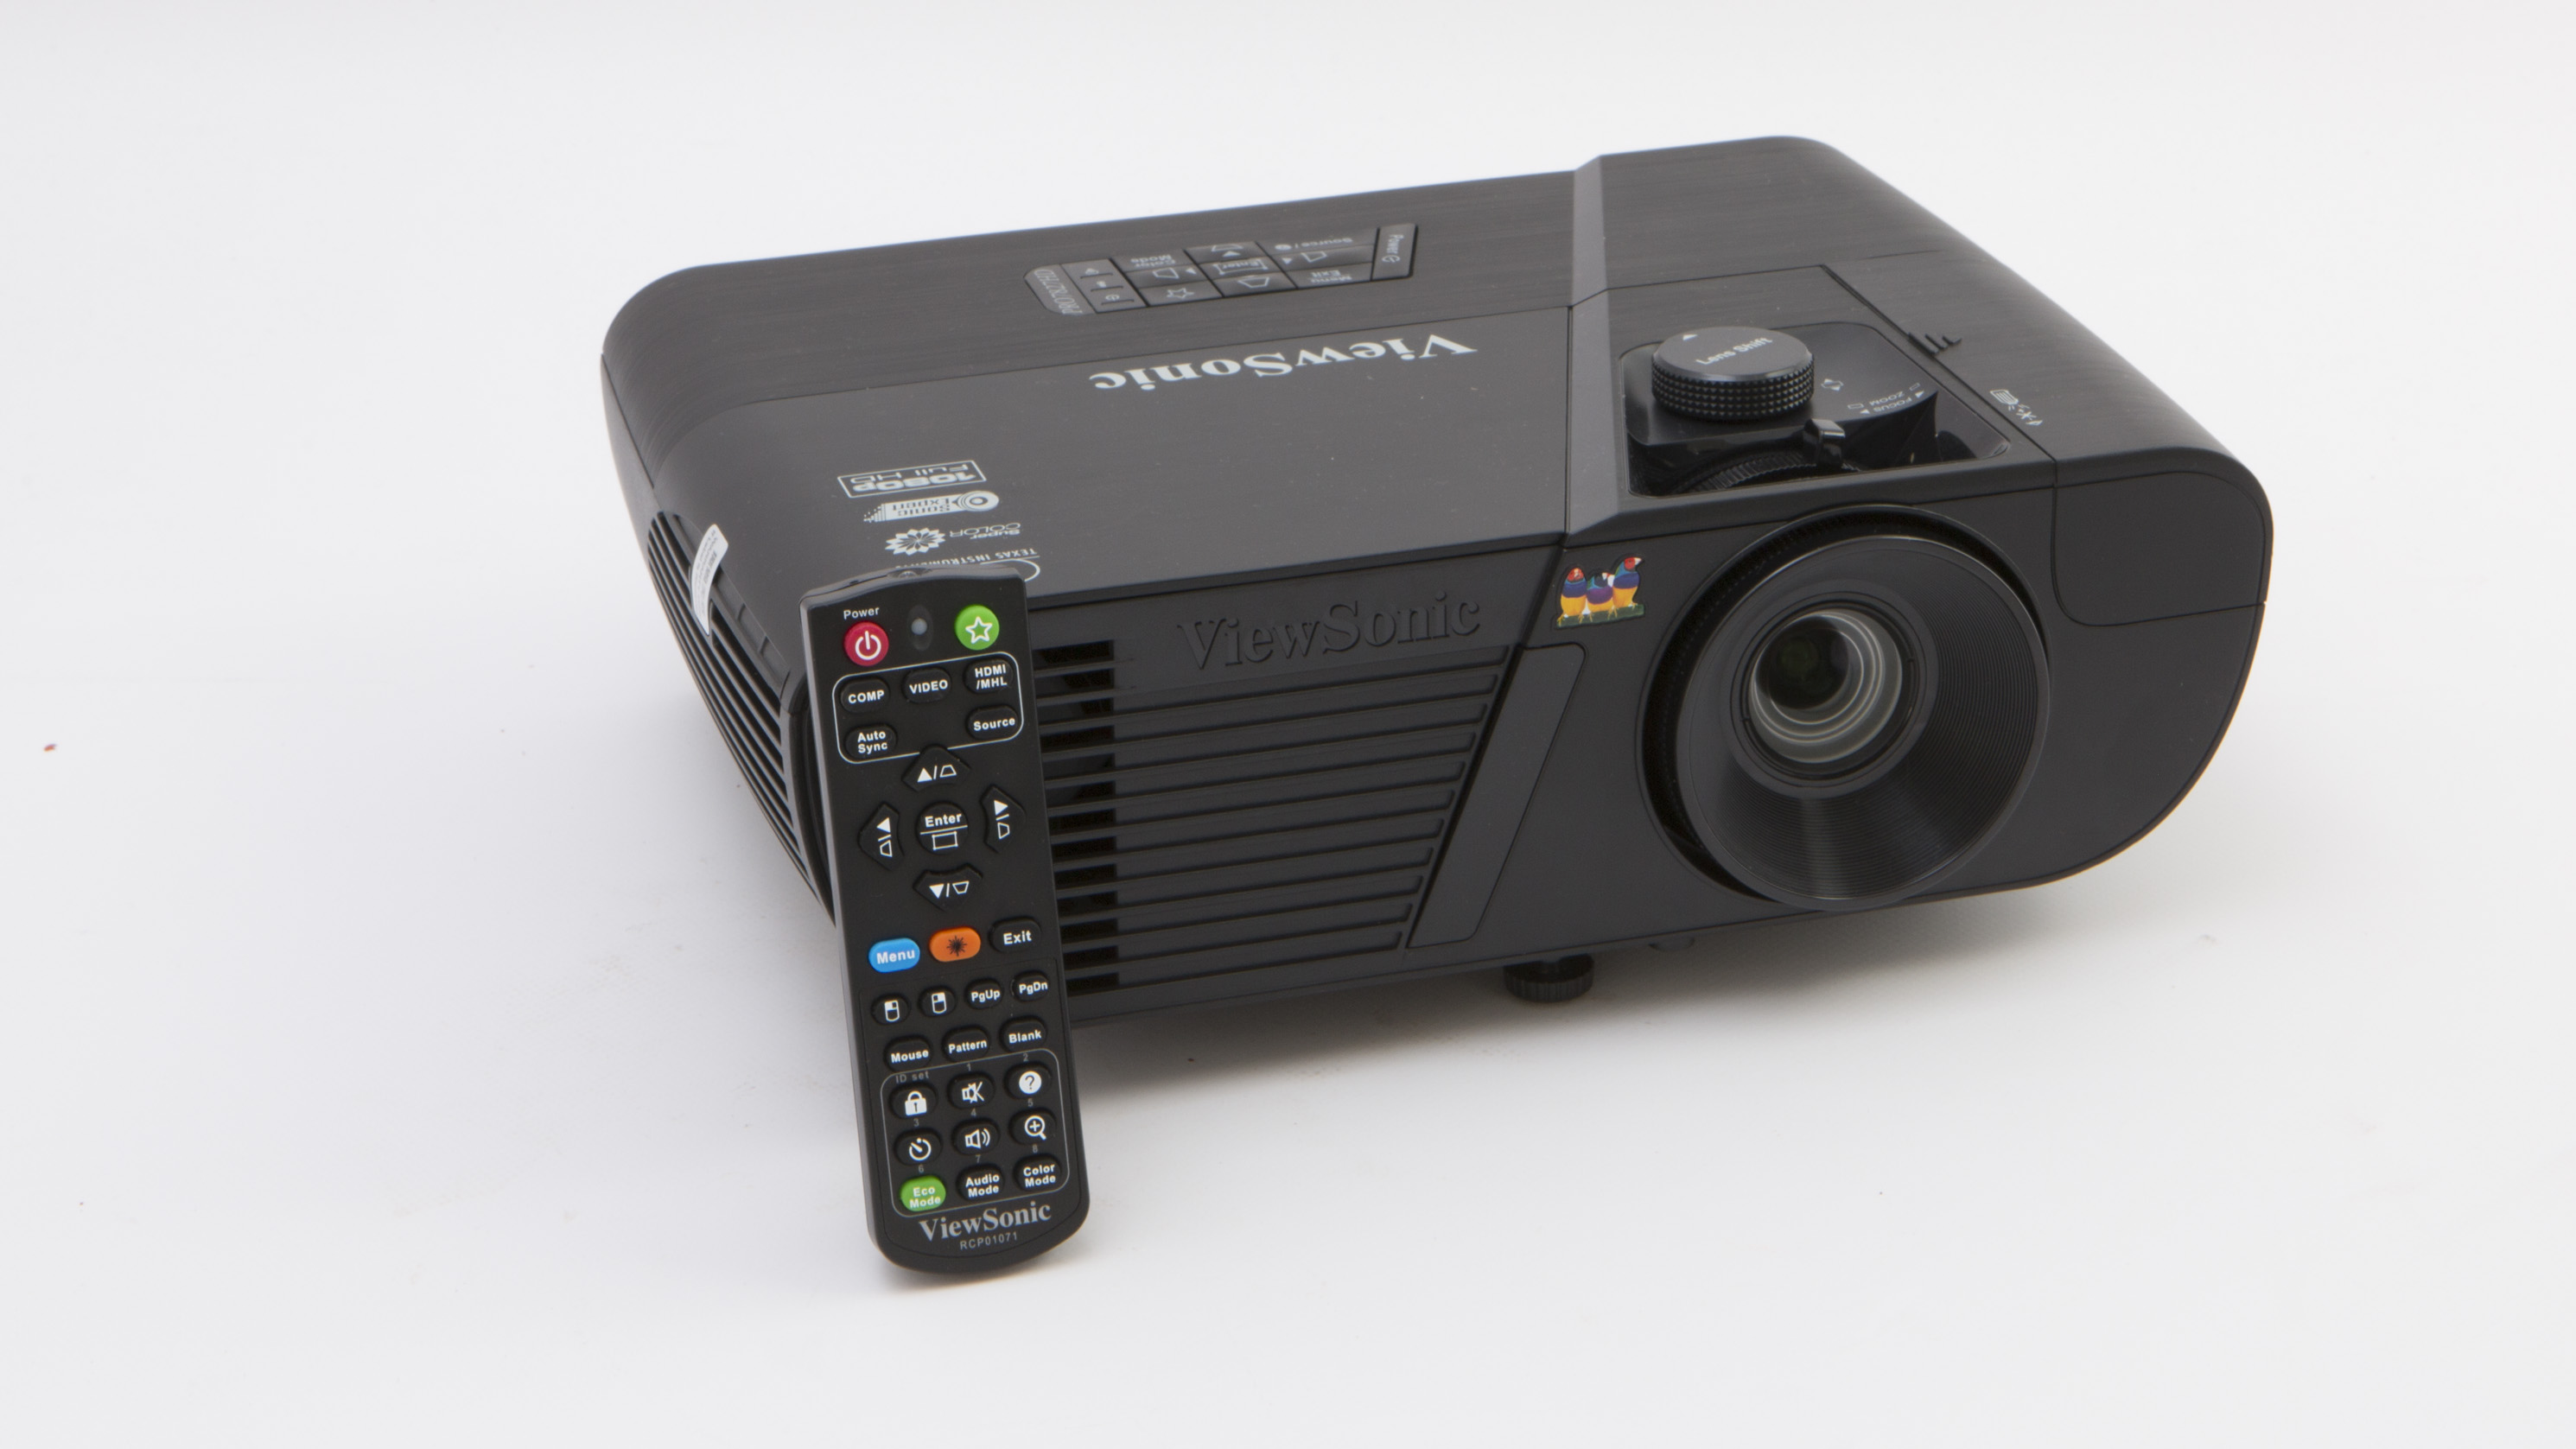 Viewsonic pro7827hd hd projector reviews choice for Miroir hd pro projector review